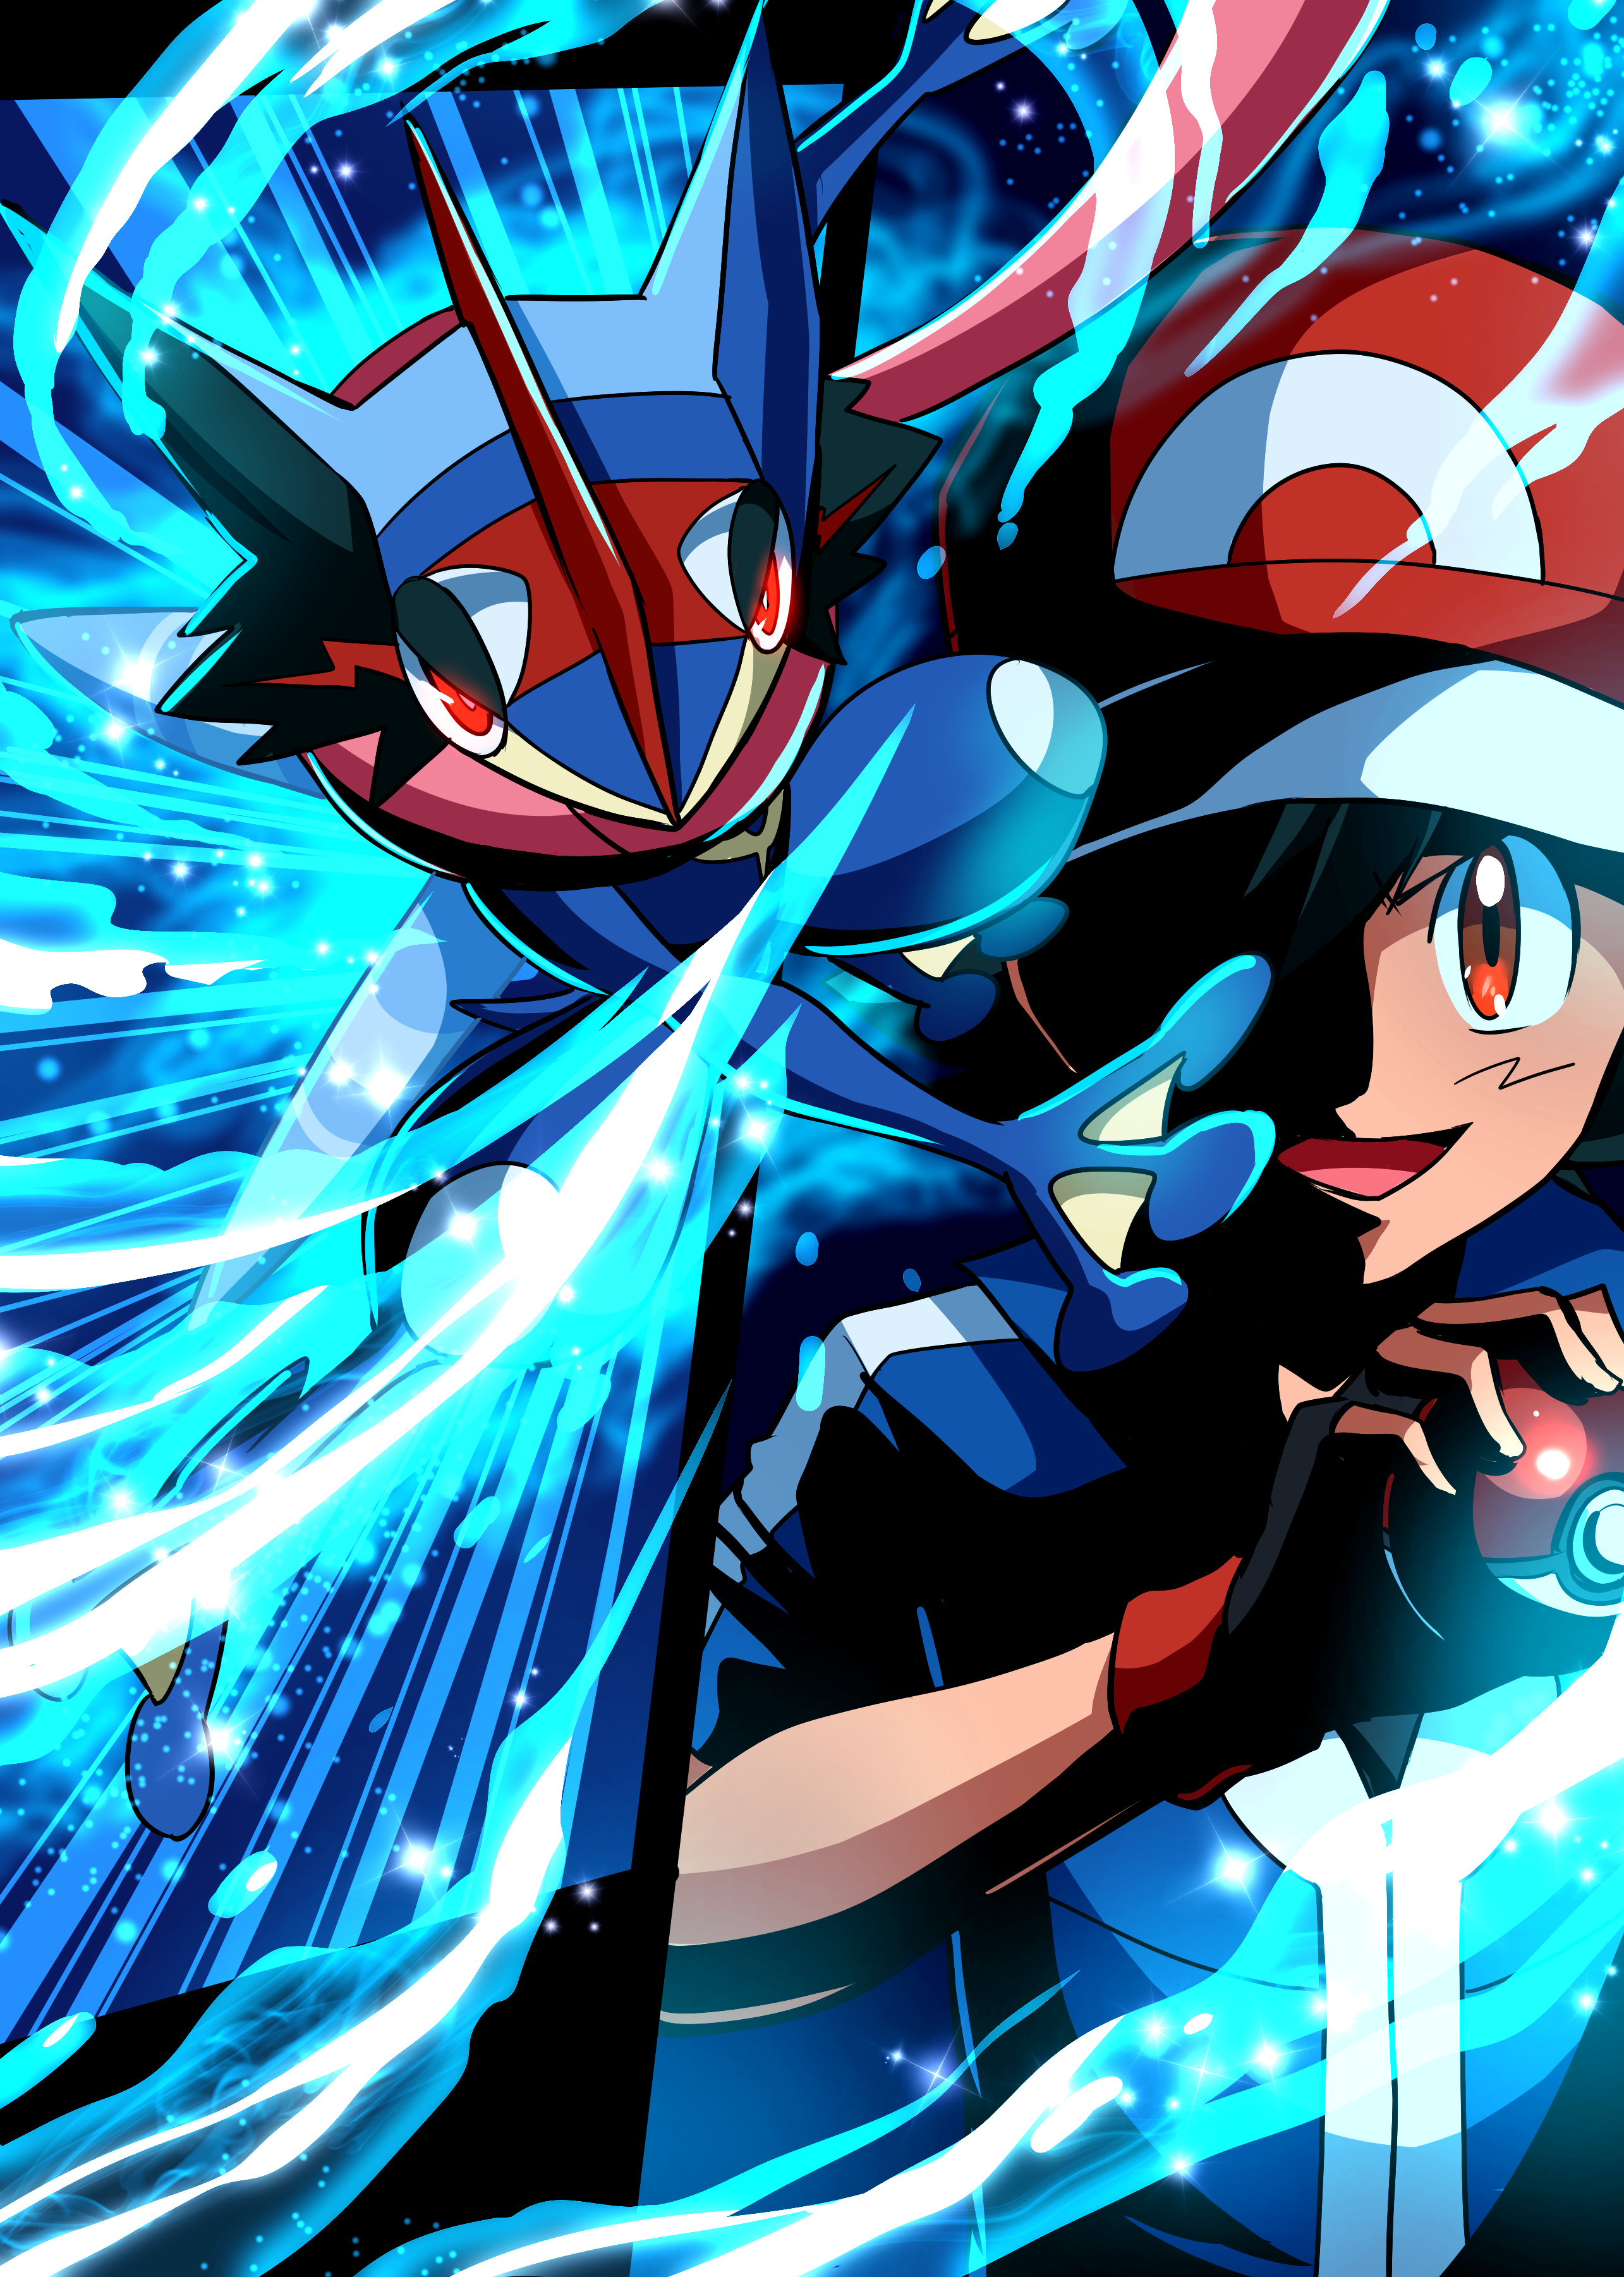 Pokemon x and y wallpaper iphone 2570x3603